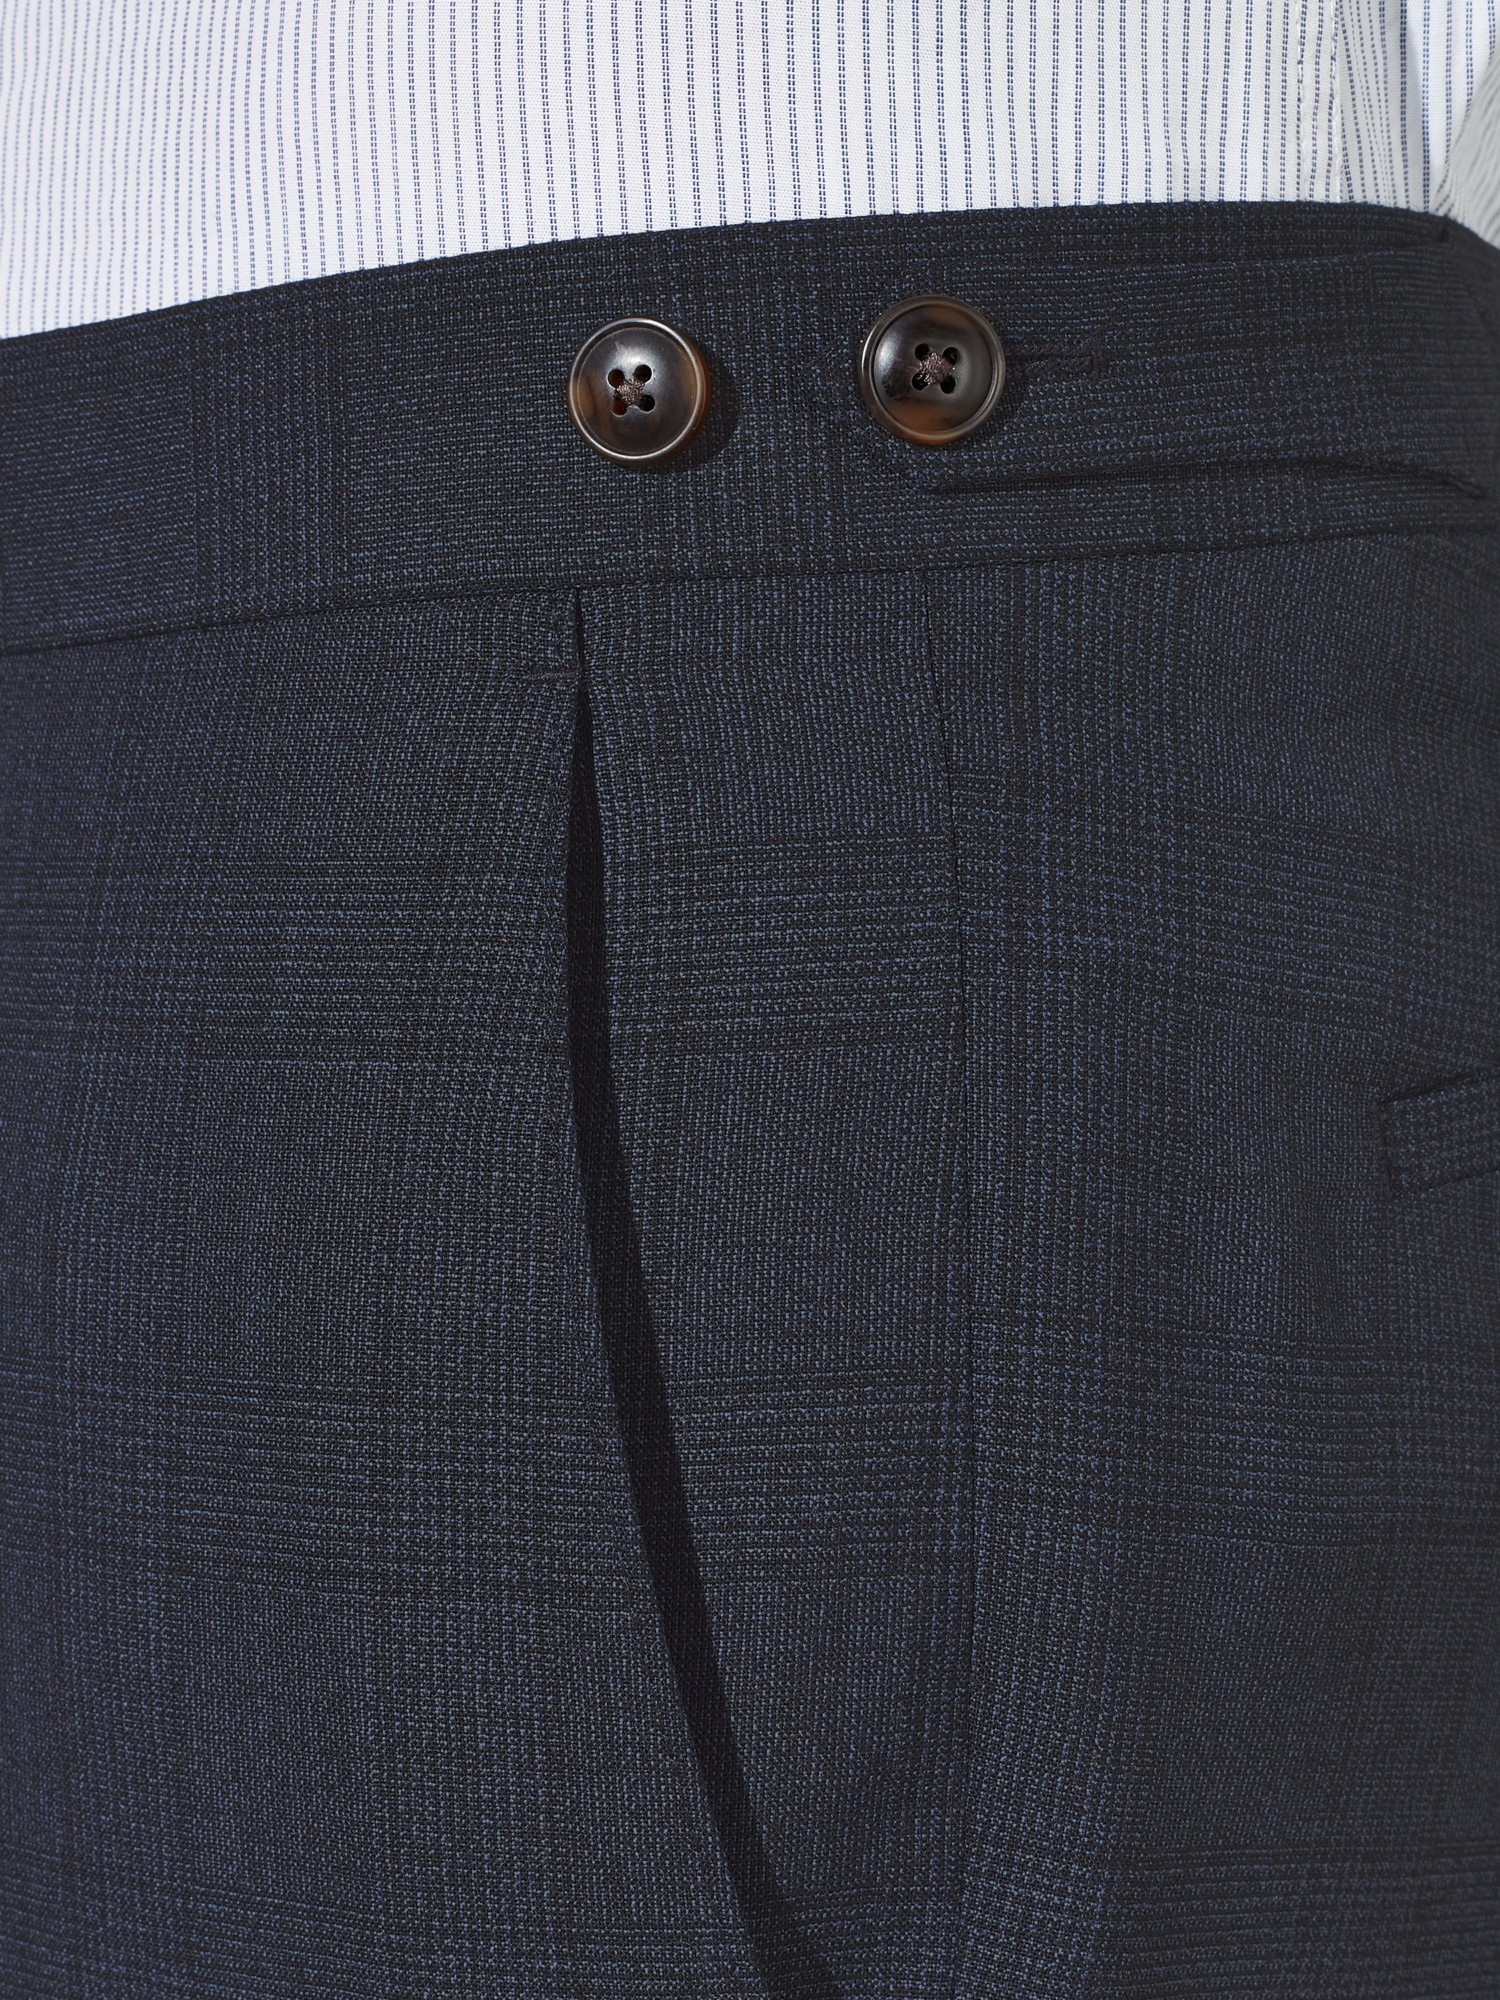 John Lewis Tailored Chepstow Twist Check Suit Trousers in Grey for Men